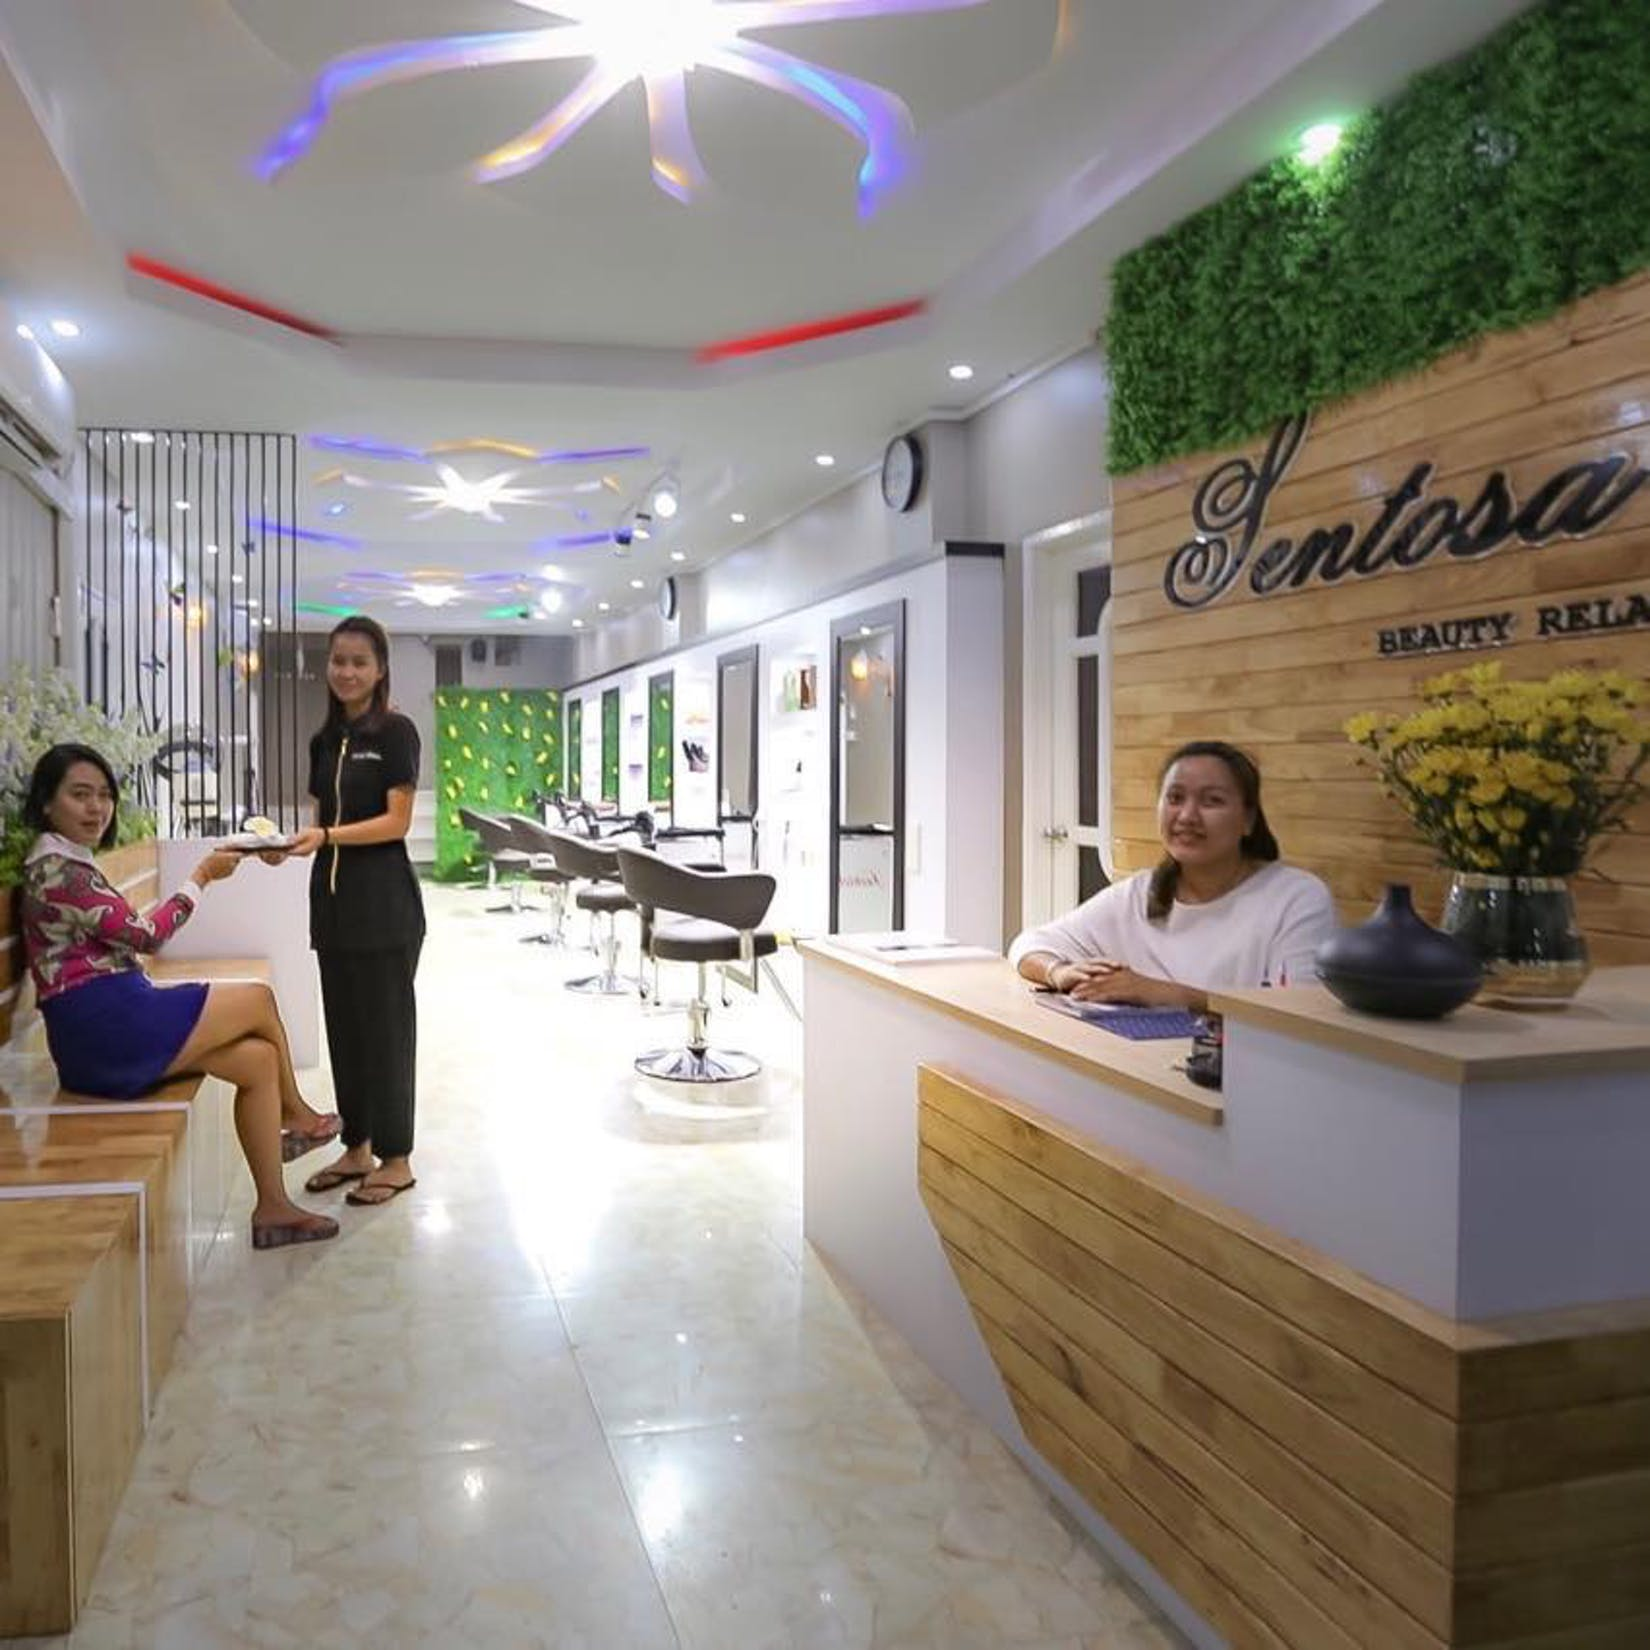 Sentosa-Beauty Relax Spa | Beauty